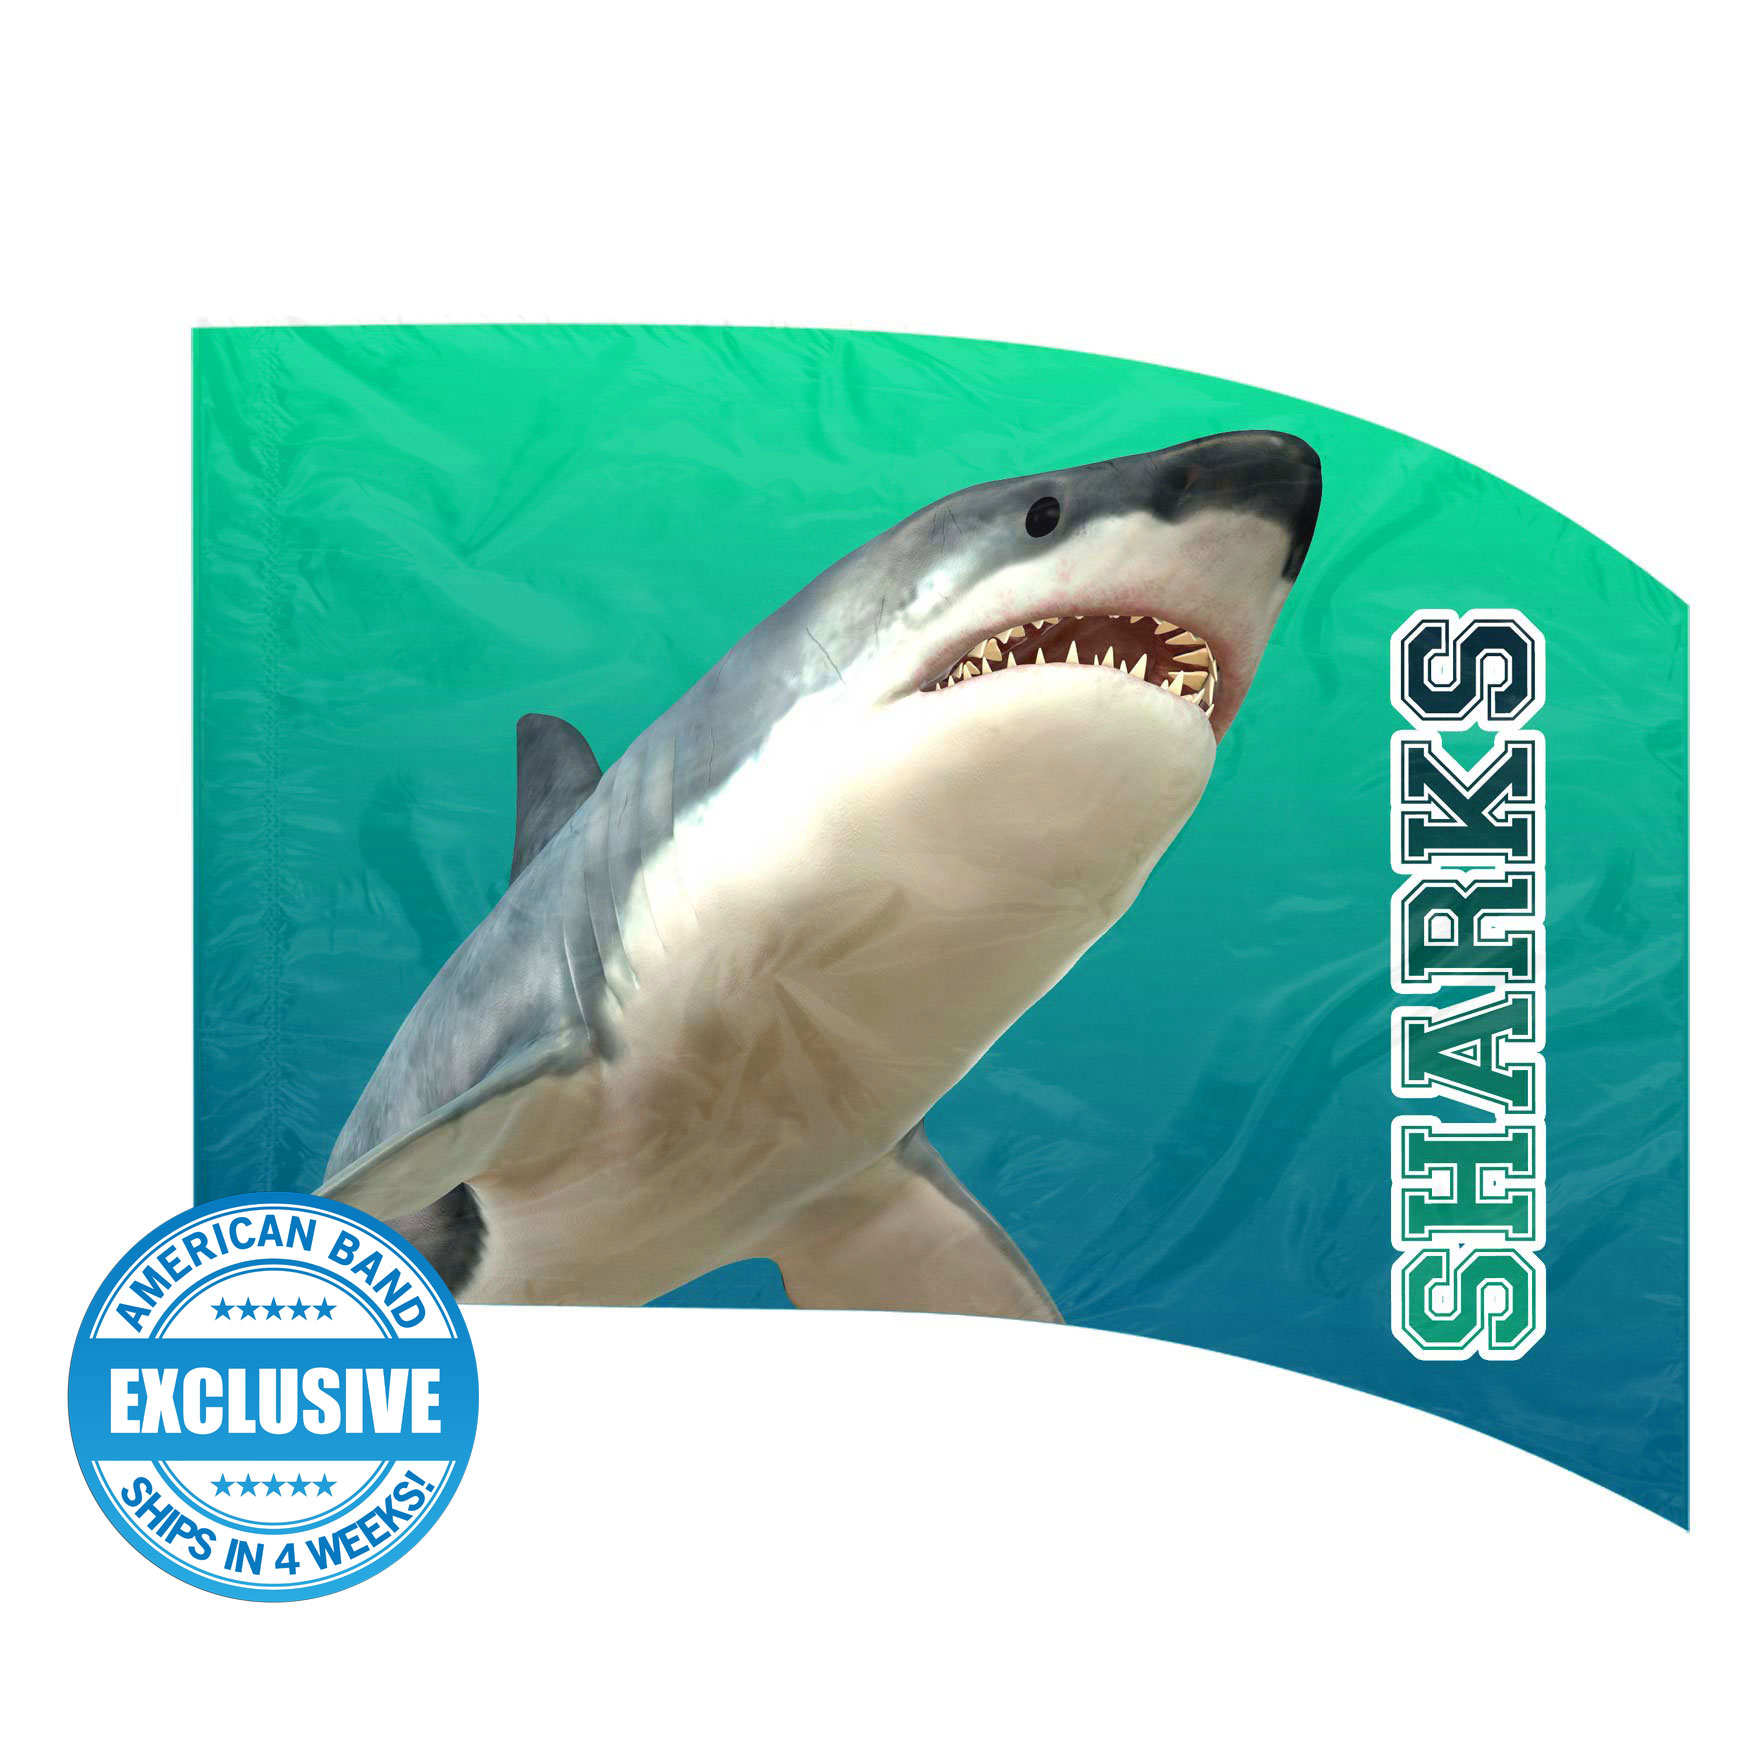 Made-to-Order Digital Mascot Flags - Shark